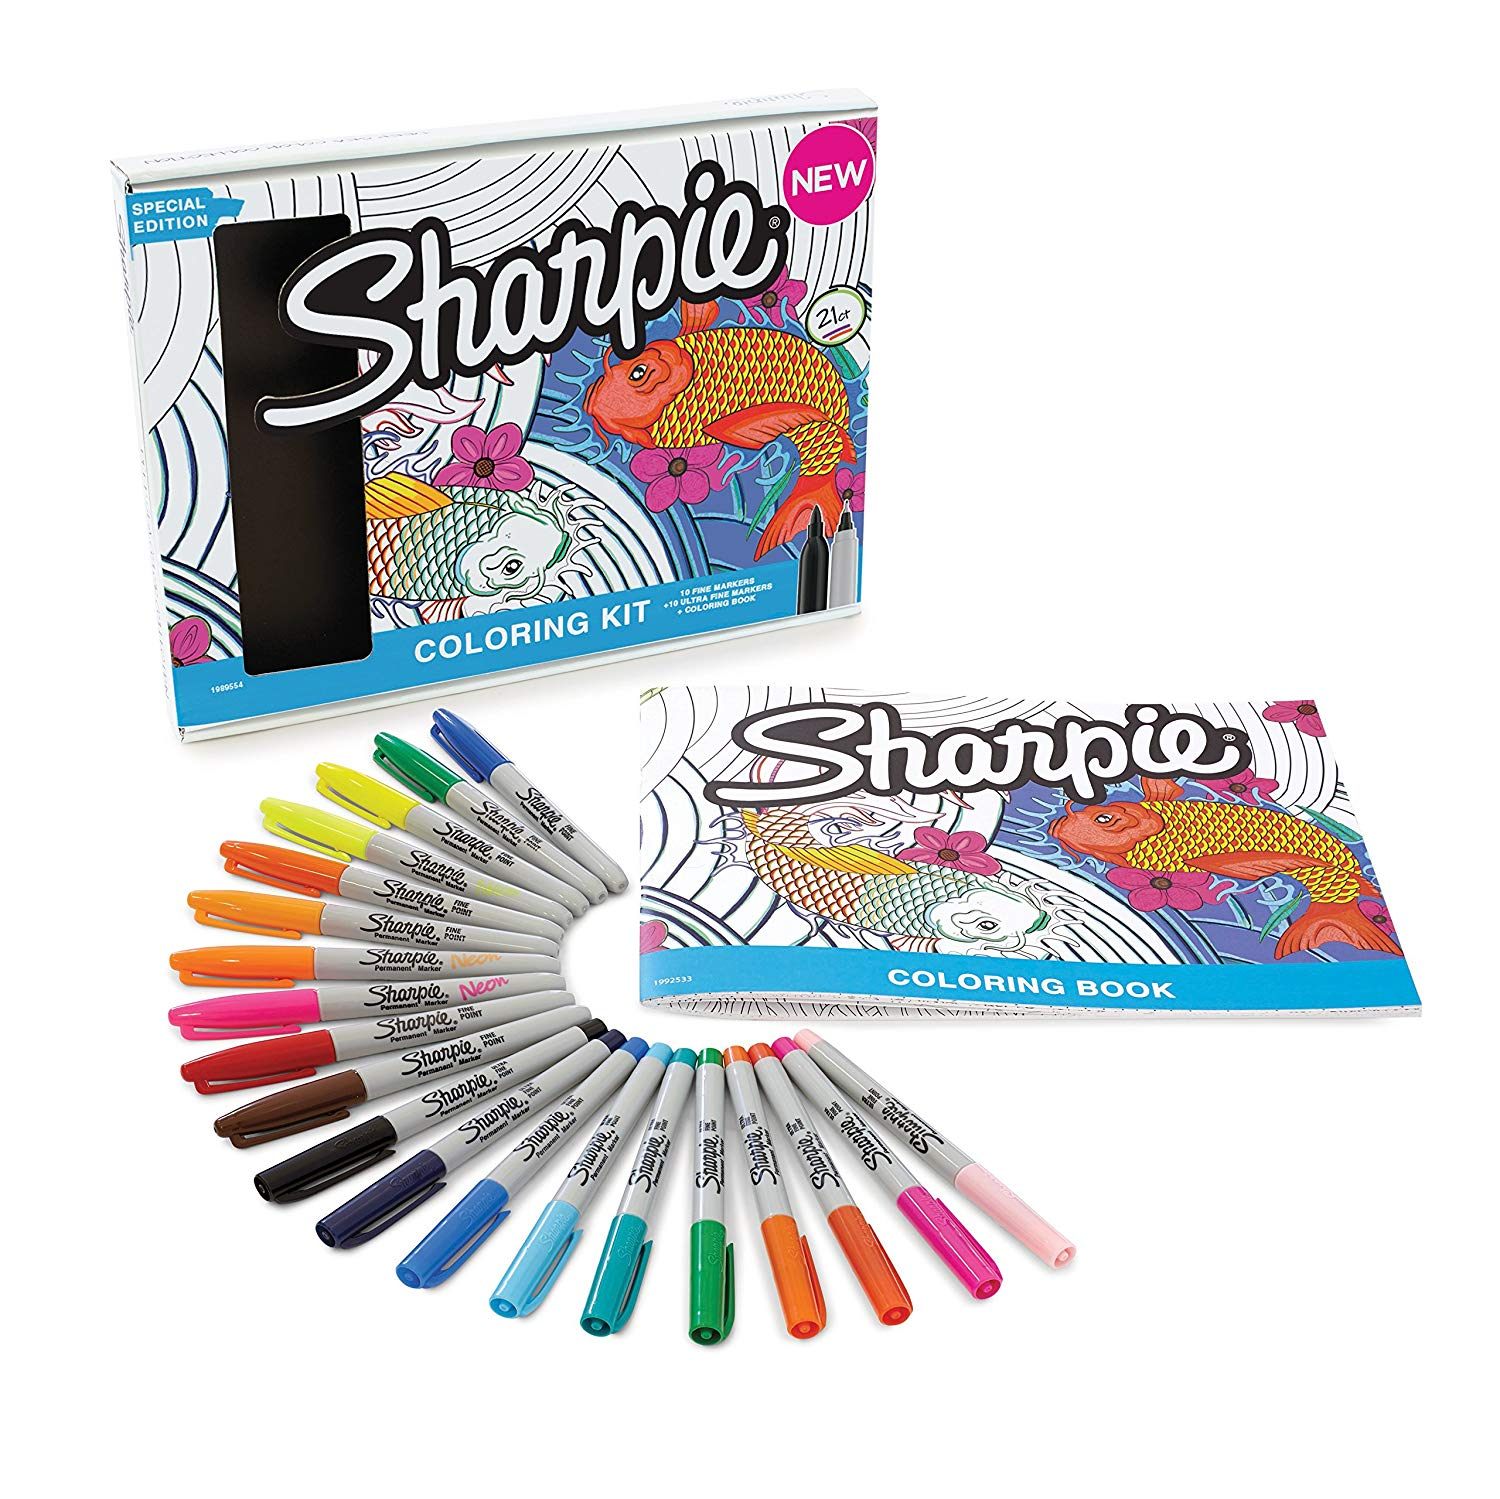 Coloring Christmas Lights With Sharpie Permanent Markers Fine And Ultra Tip Adult